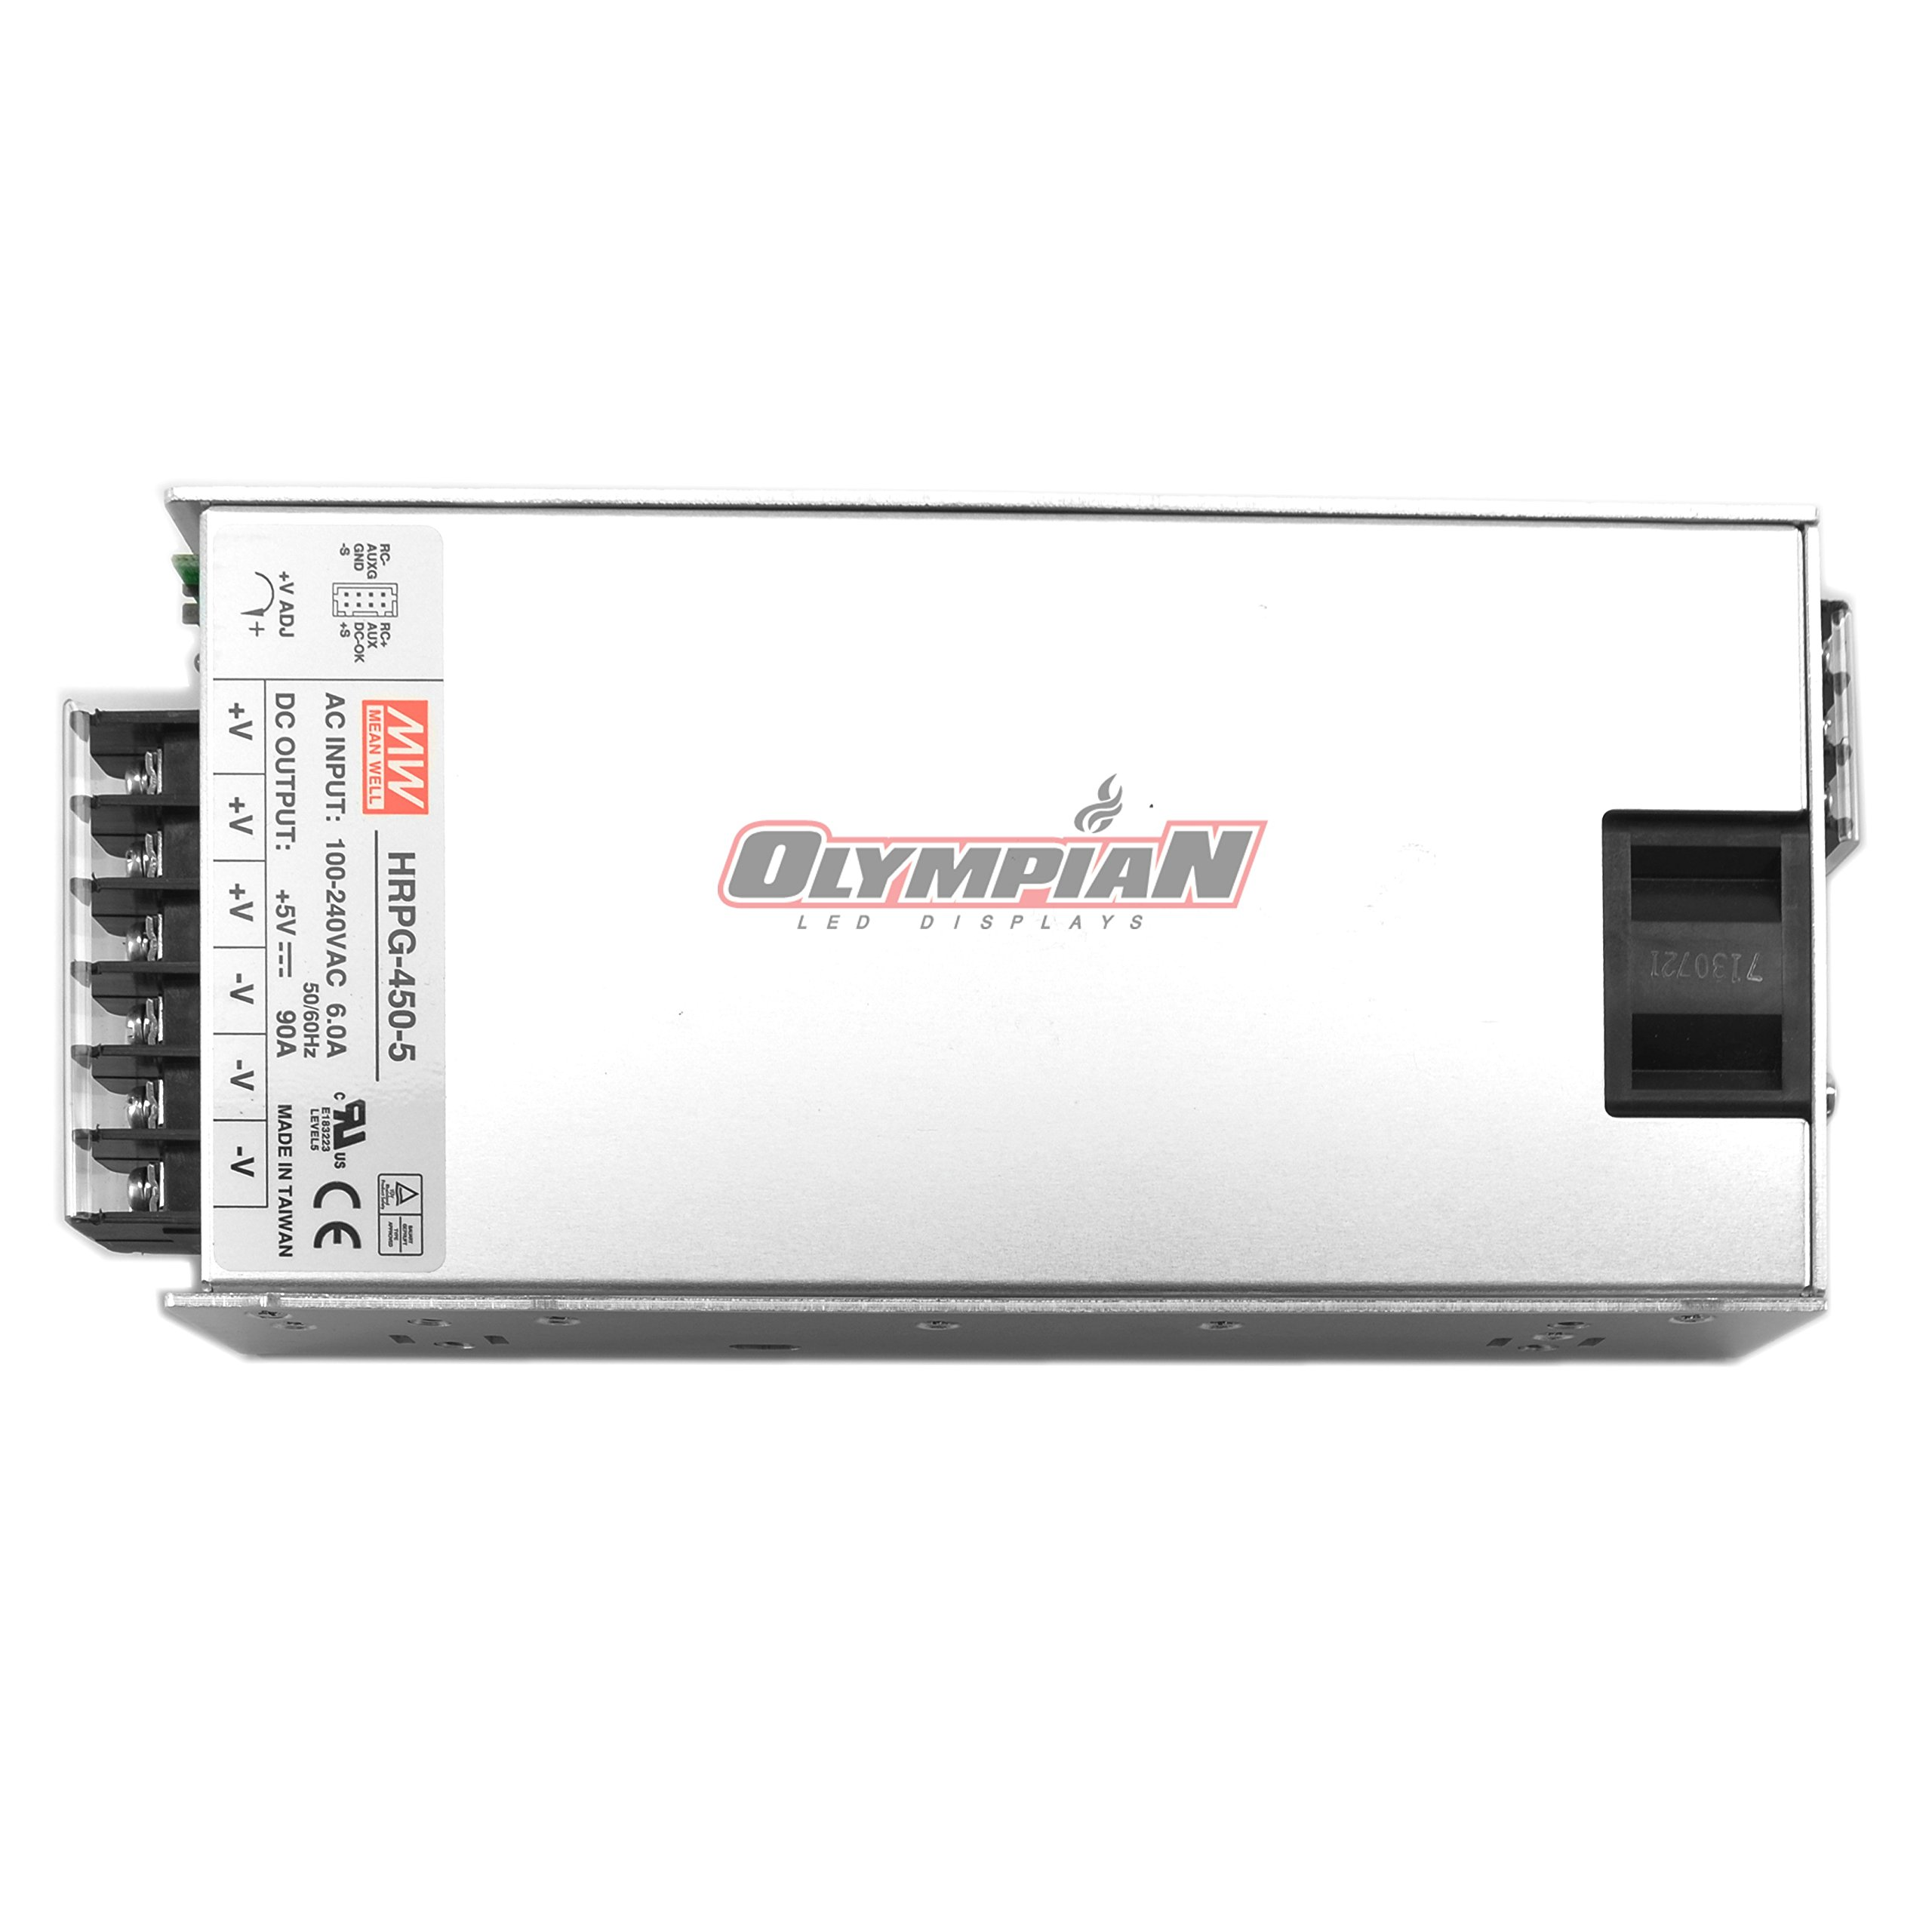 Mean Well HRPG-450-5 Switching Power Supply 450W 5V 90A /W PFC